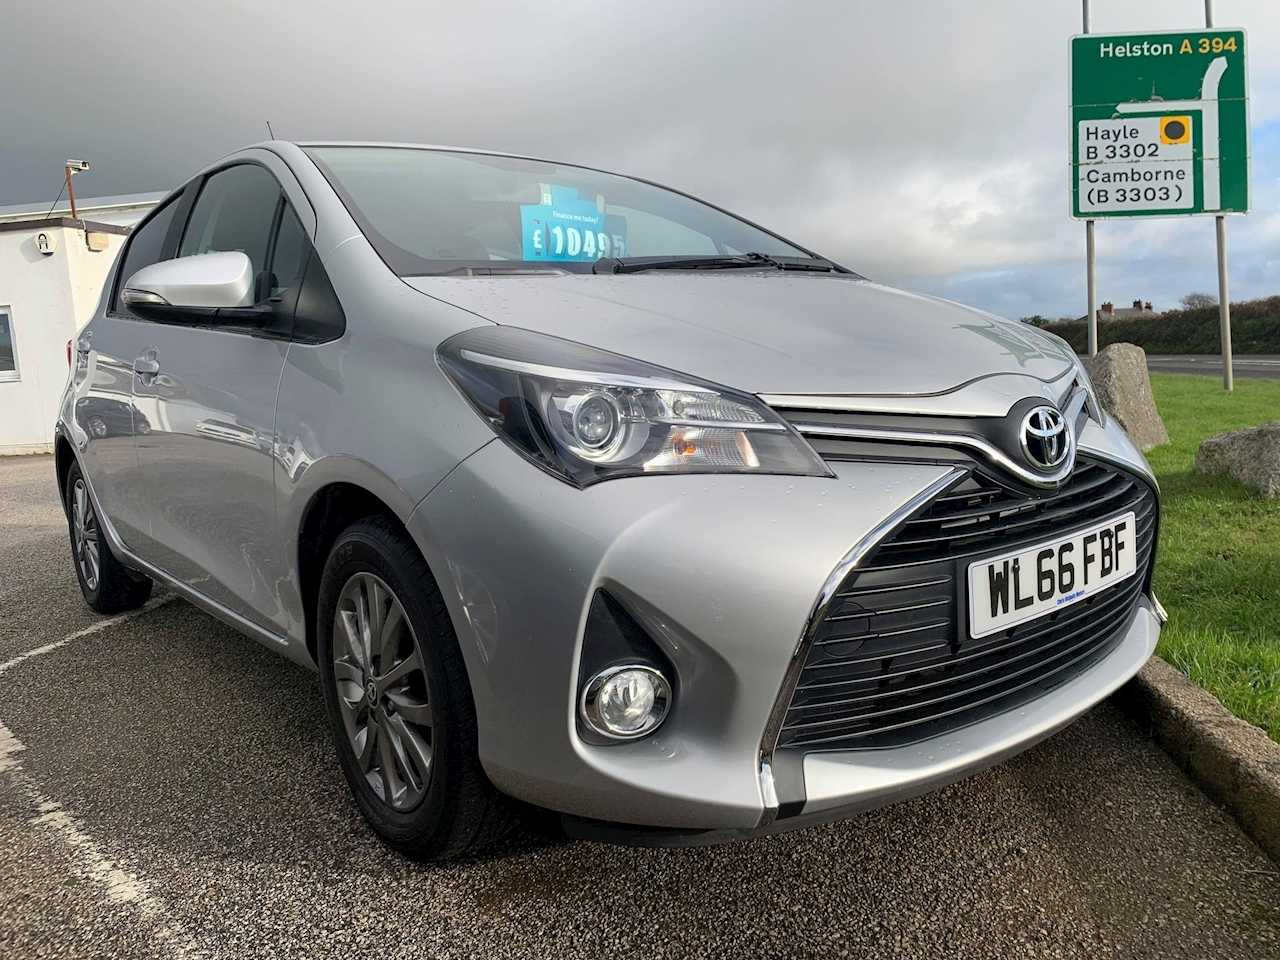 Toyota Yaris Icon Hatchback 1.3 Multidrive S Petrol